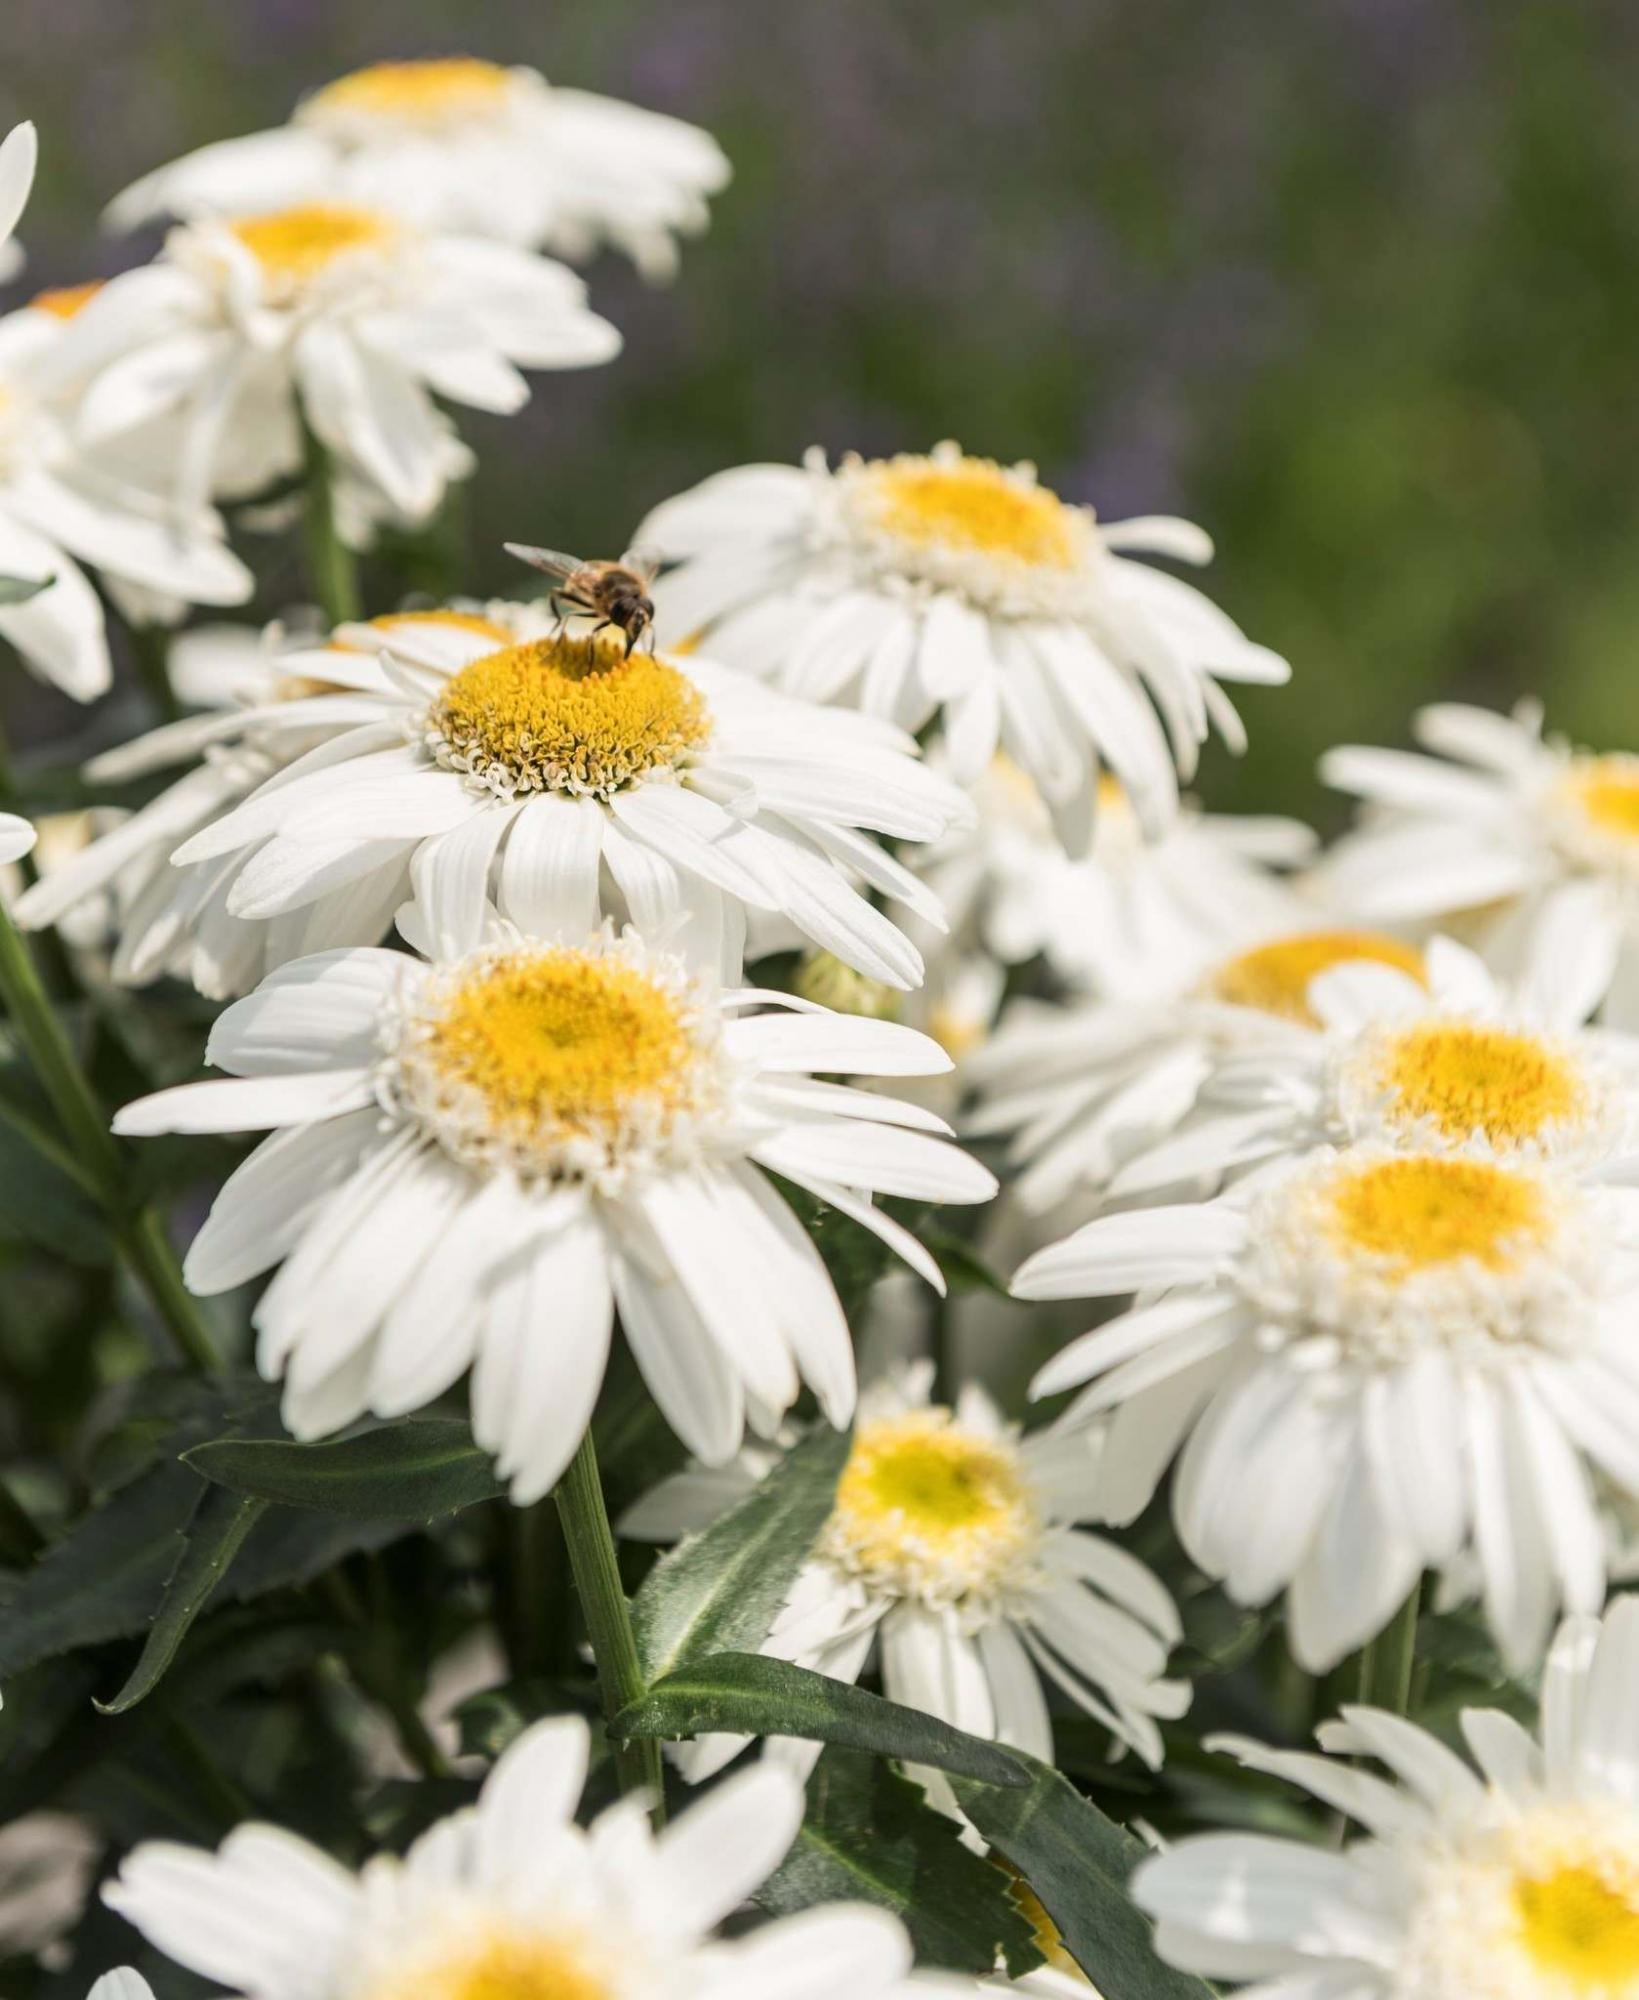 <p>Dummen Orange</p><p>Sweet Daisy Birdy shasta daisy is a new compact perennial that will bloom from June to September.</p></p></p>